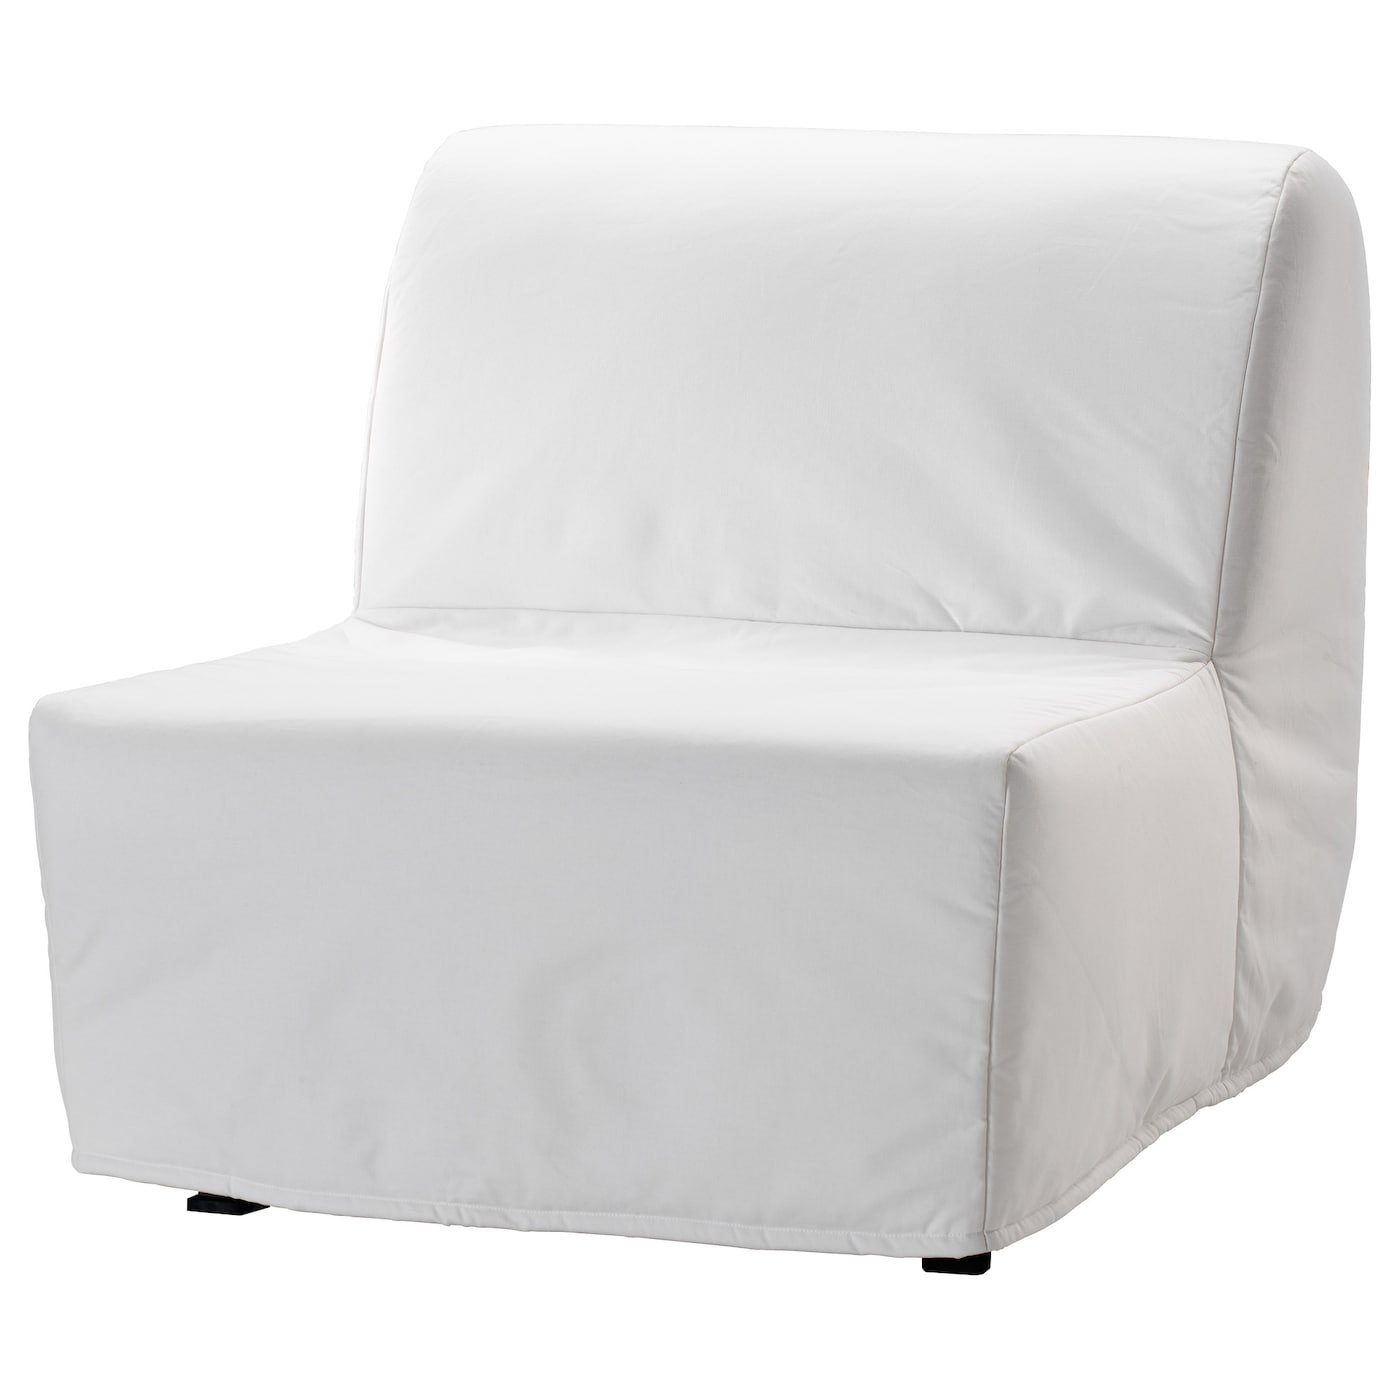 Ikea Lycksele Chair Bed Cover